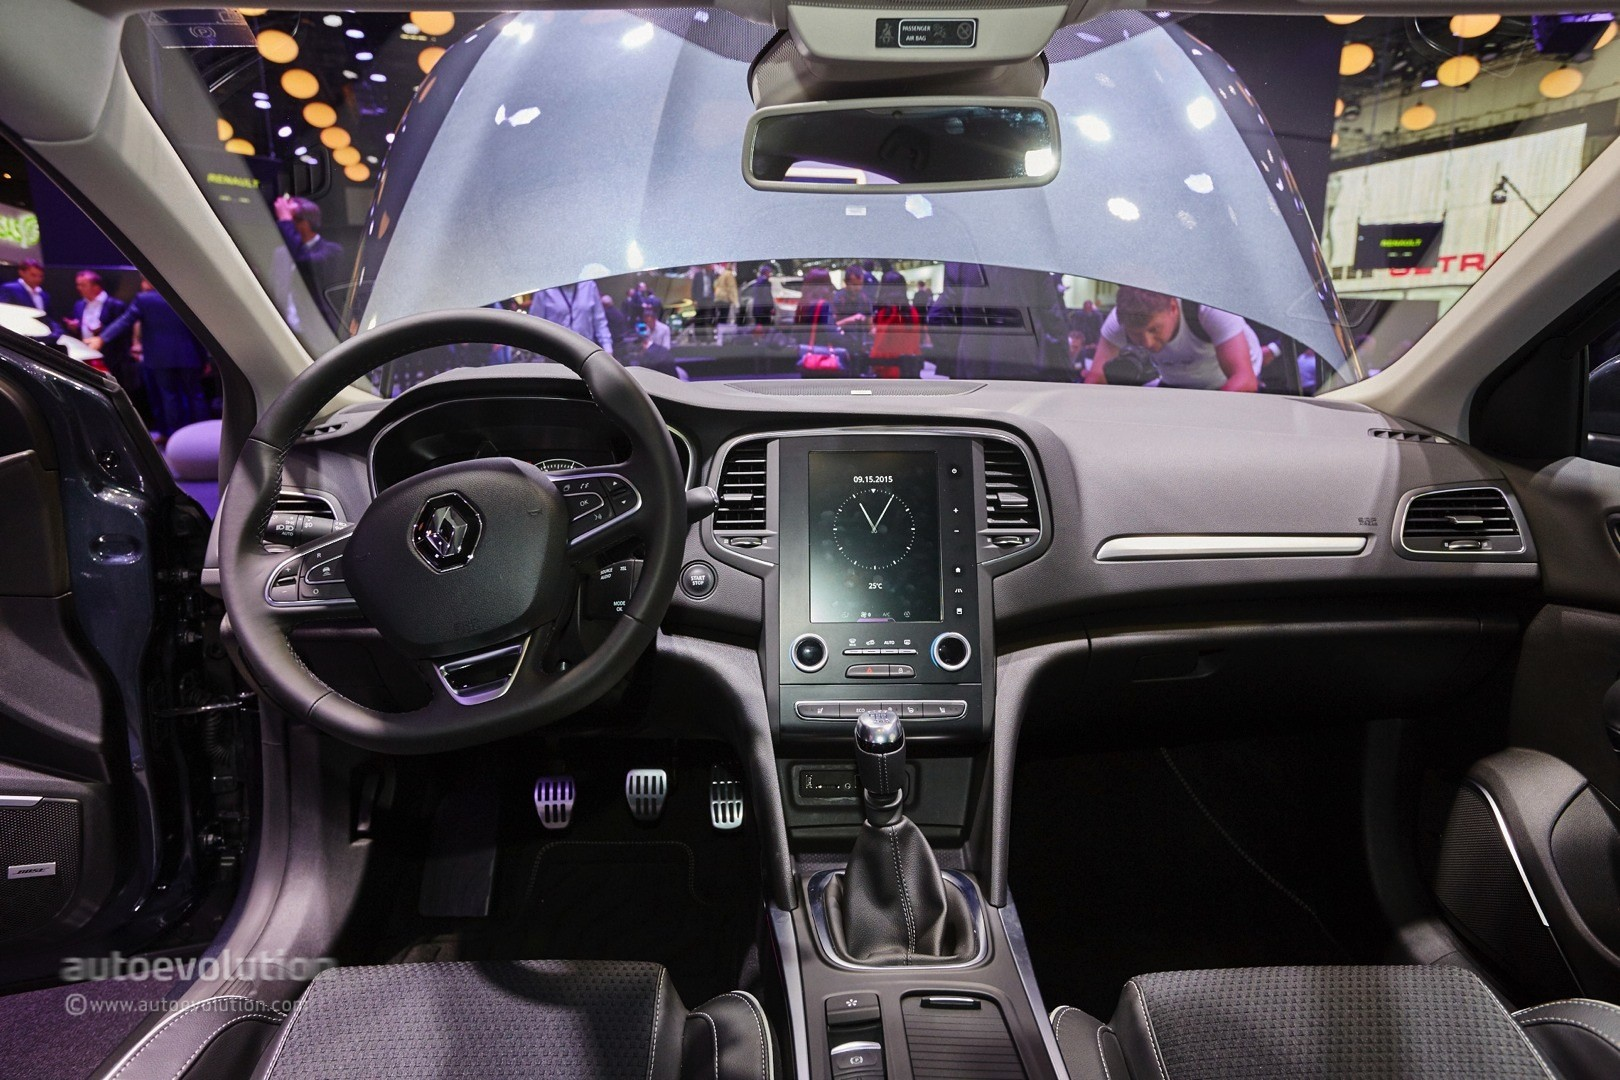 four wheel steering Station wagons have been around a long time, but the renault talisman grandtour's all-wheel steering offers new and surprising maneuverability.